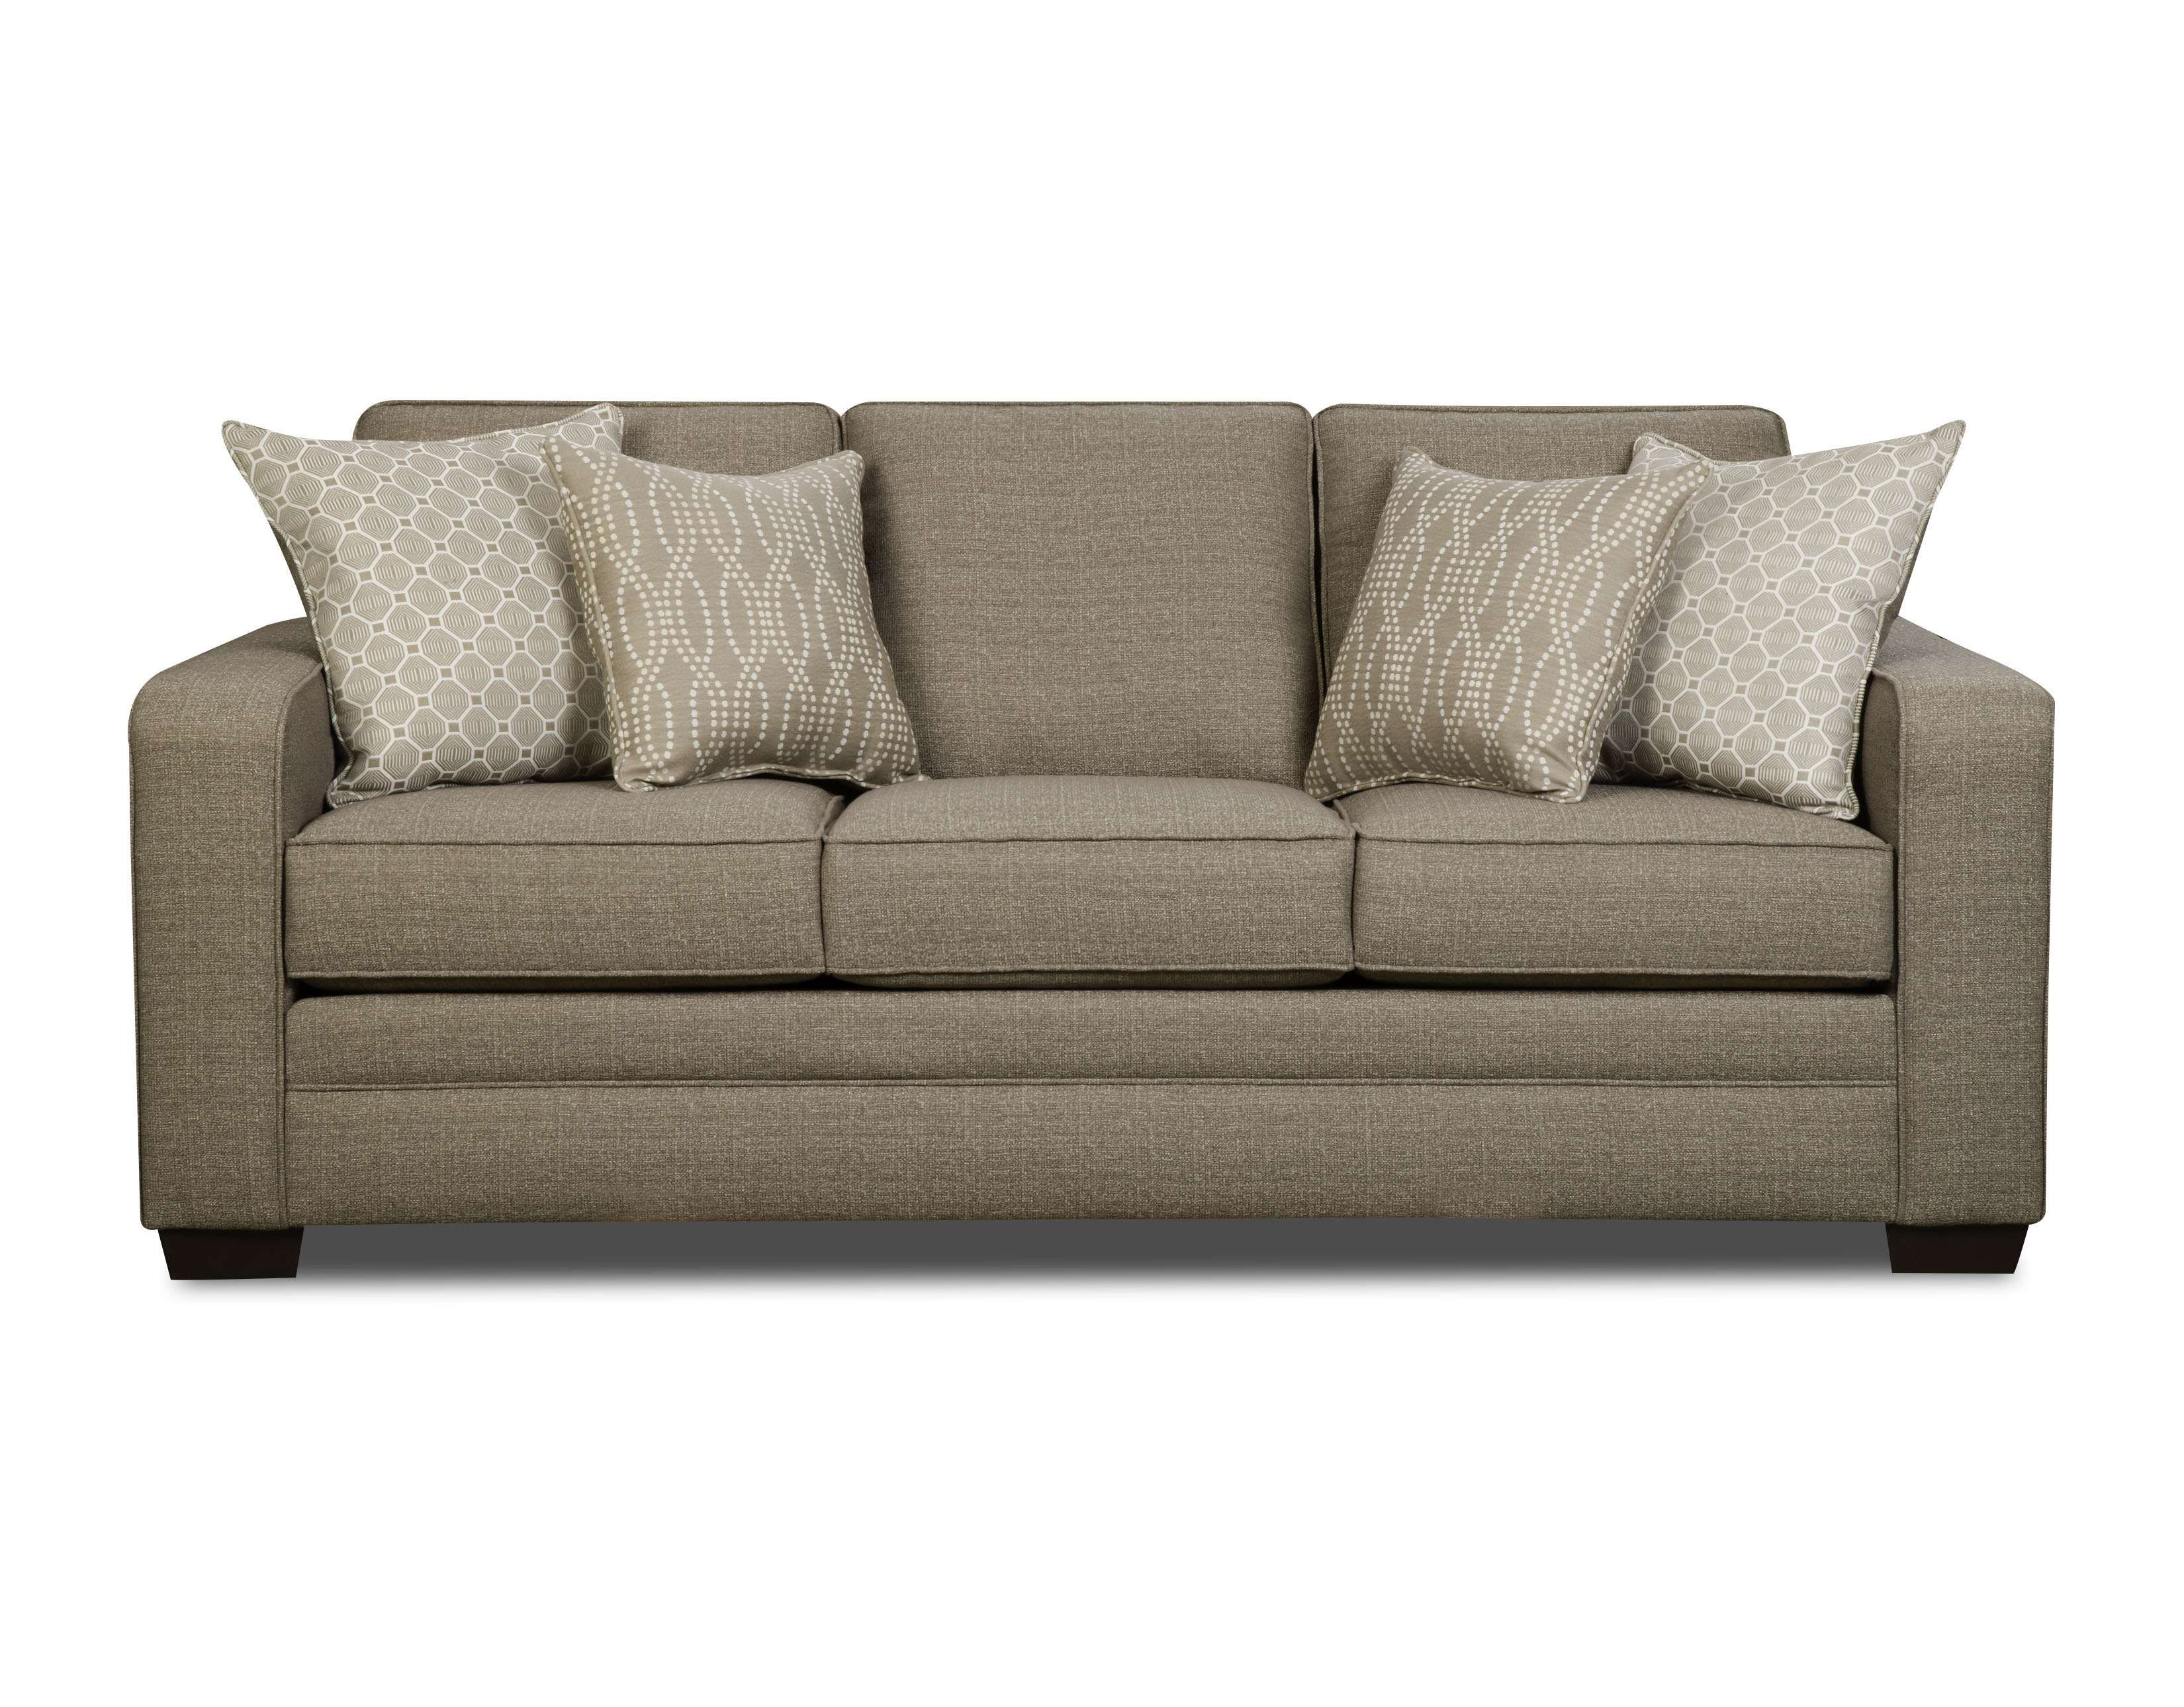 Simmons Upholstery Seguin Pewter Sofa Reviews Goedekers Com Simmons Furniture Sofa Upholstery